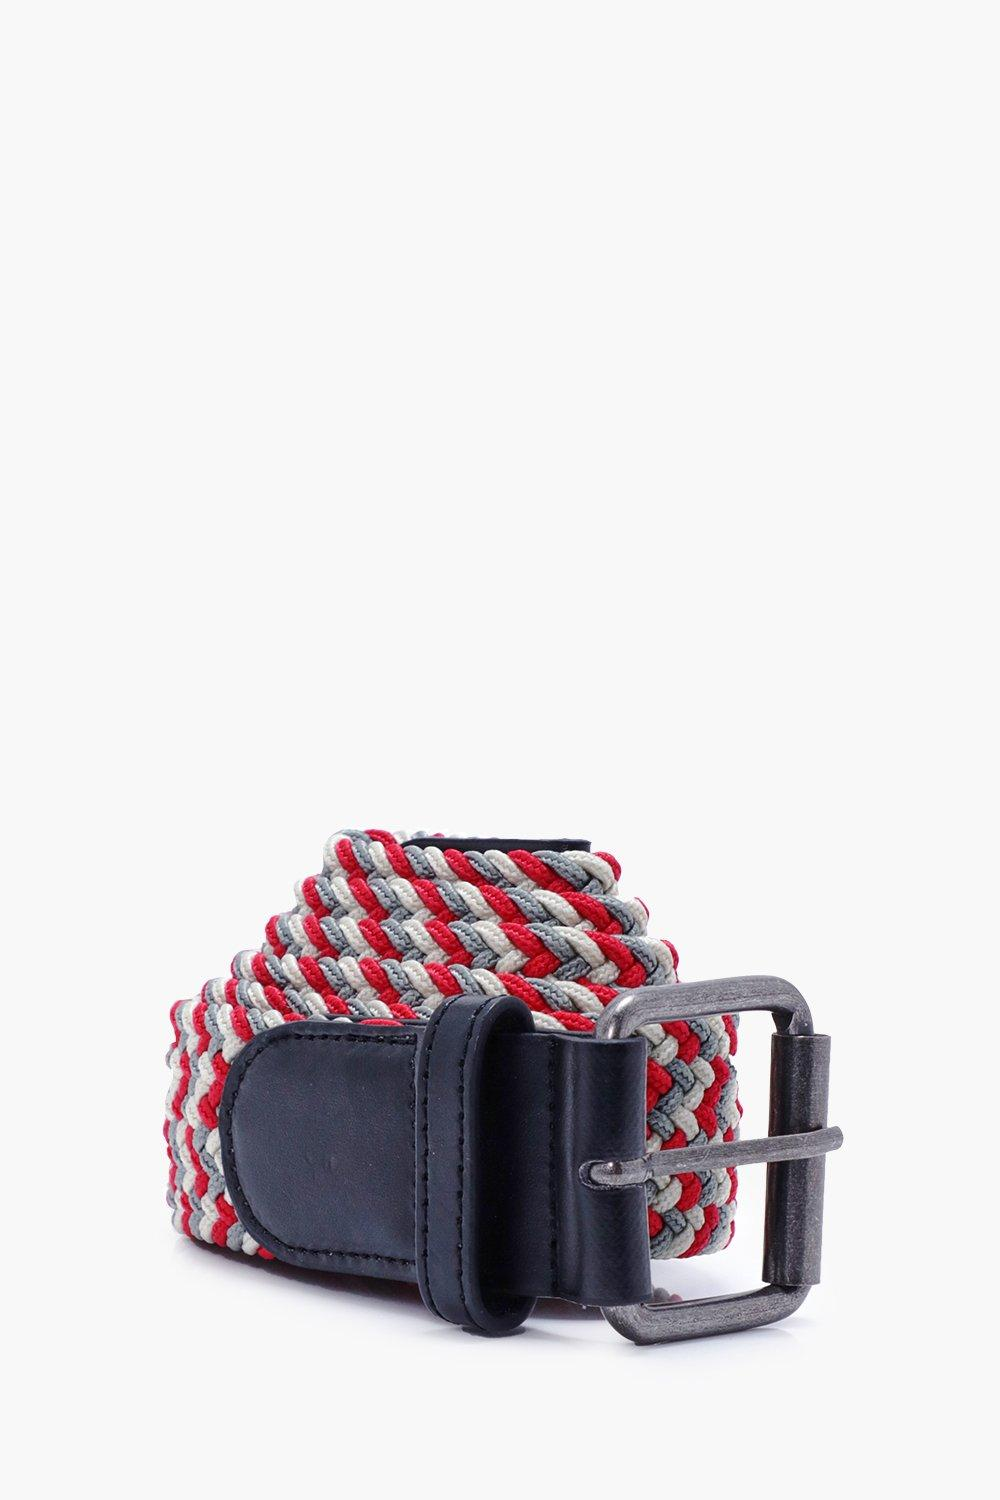 Coloured Plaited Belt - multi - Multi Coloured Pla